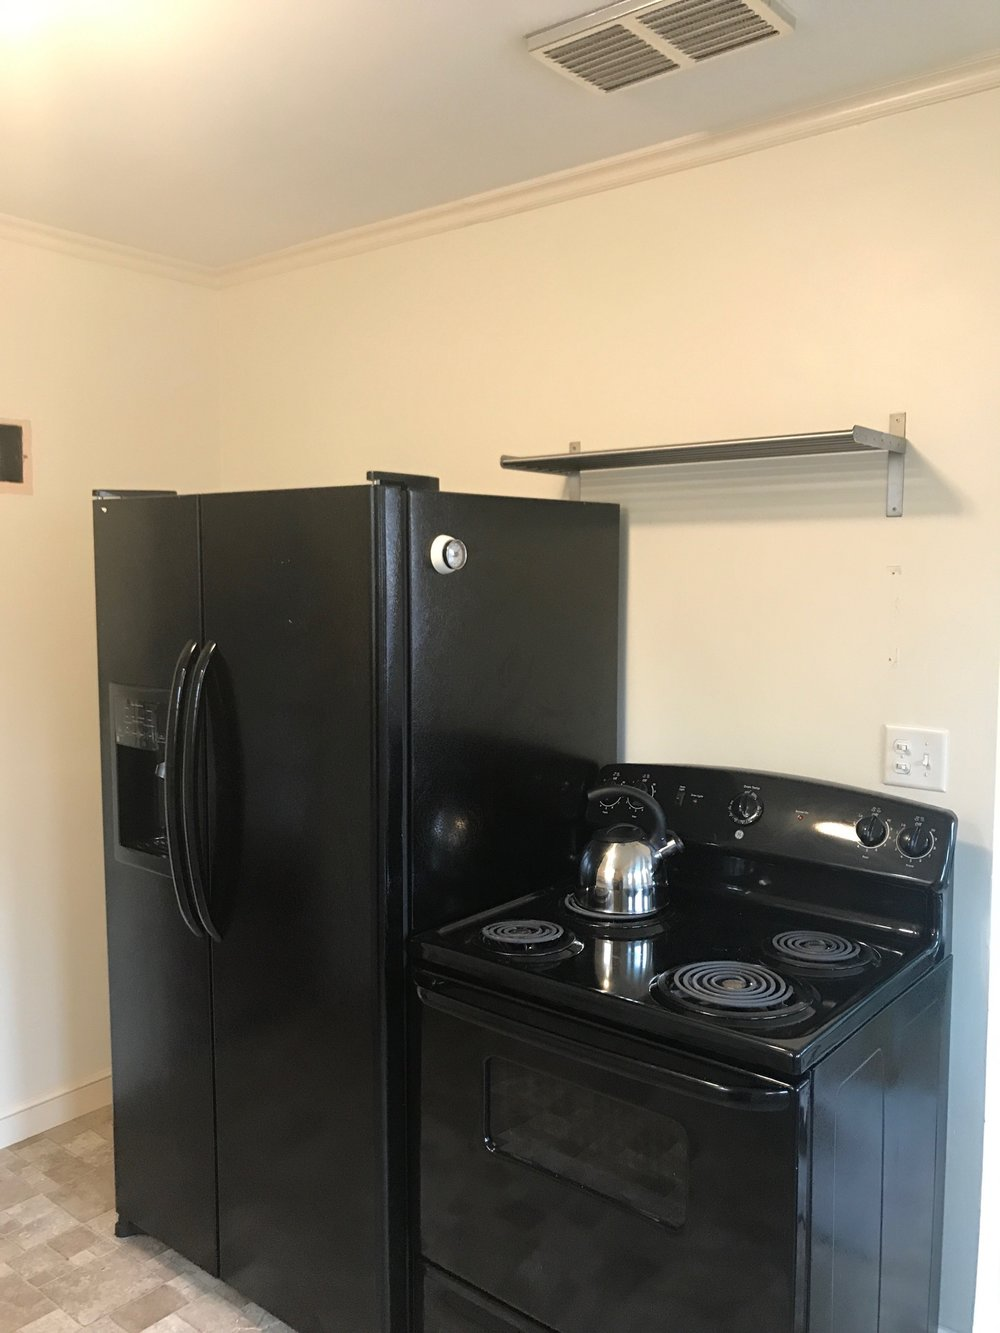 We had the refrigerator against the side wall and an IKEA metal shelving system in between for more storage. We also installed two metal shelves over the range when we moved in for additional storage (not pretty but it was functional).